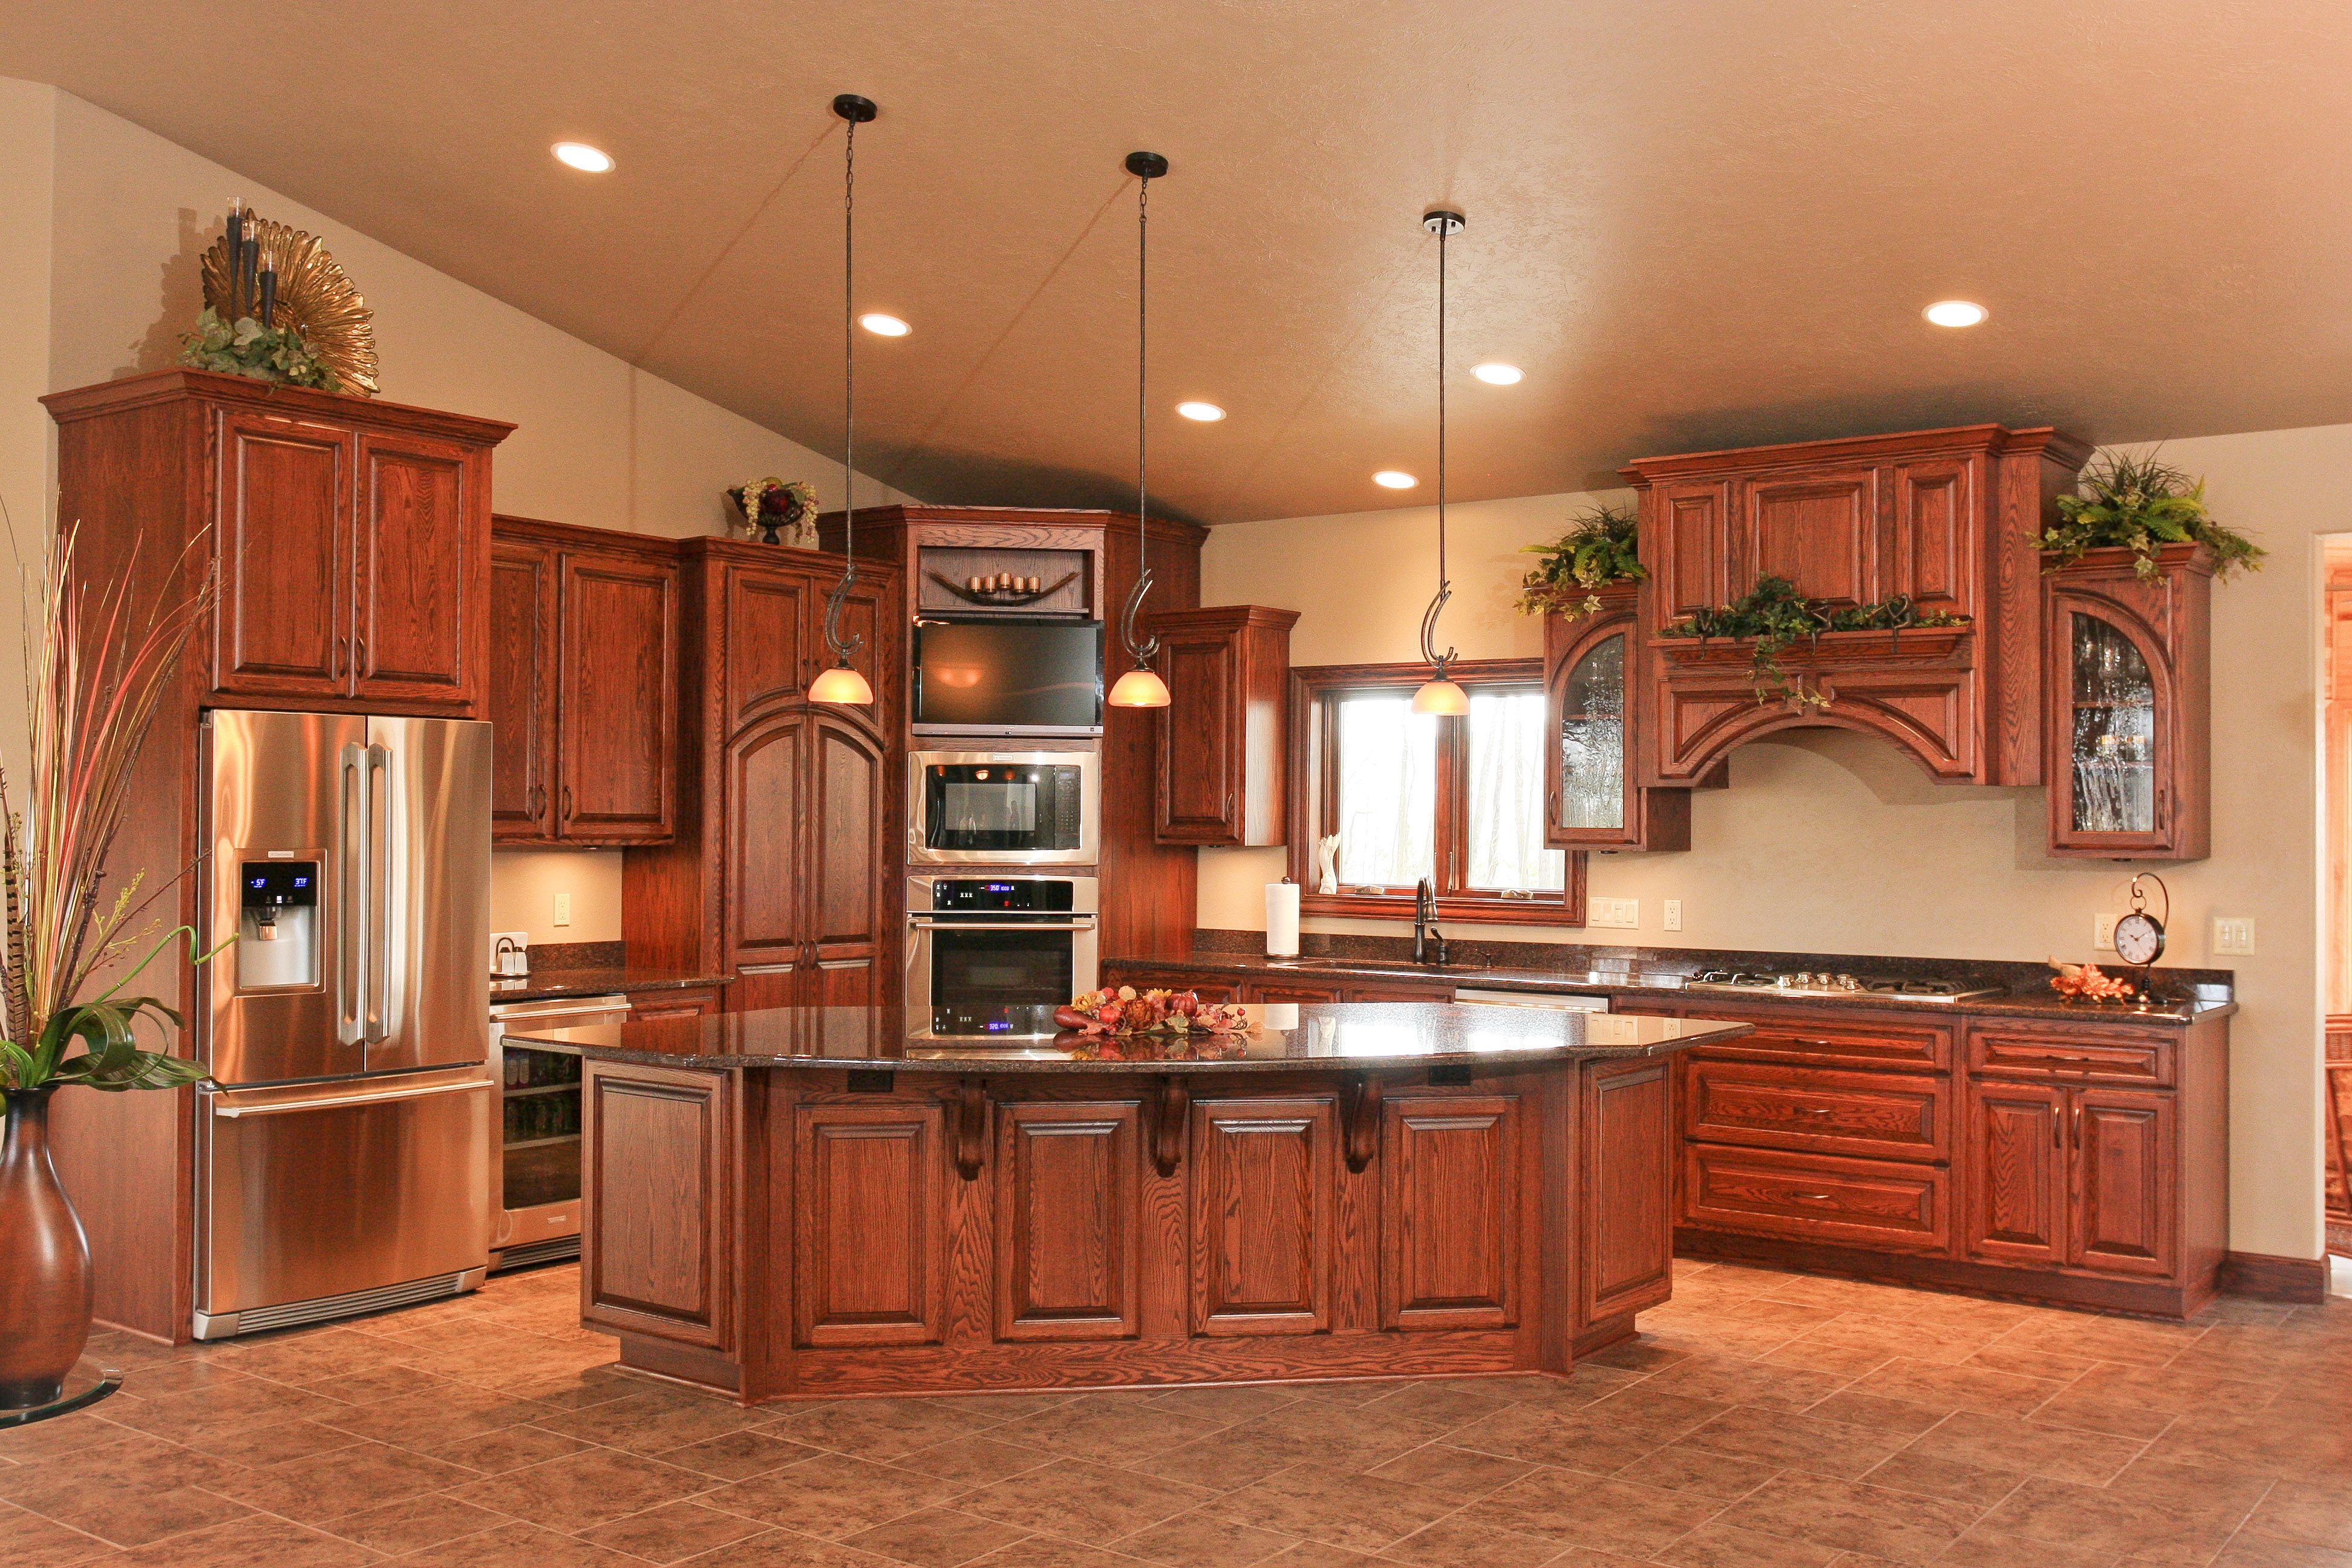 4 Reasons To Choose Custom Made Kitchen Cabinets Designalls In 2020 Custom Kitchen Cabinets Design Custom Built Kitchen Cabinets Custom Bathroom Cabinets